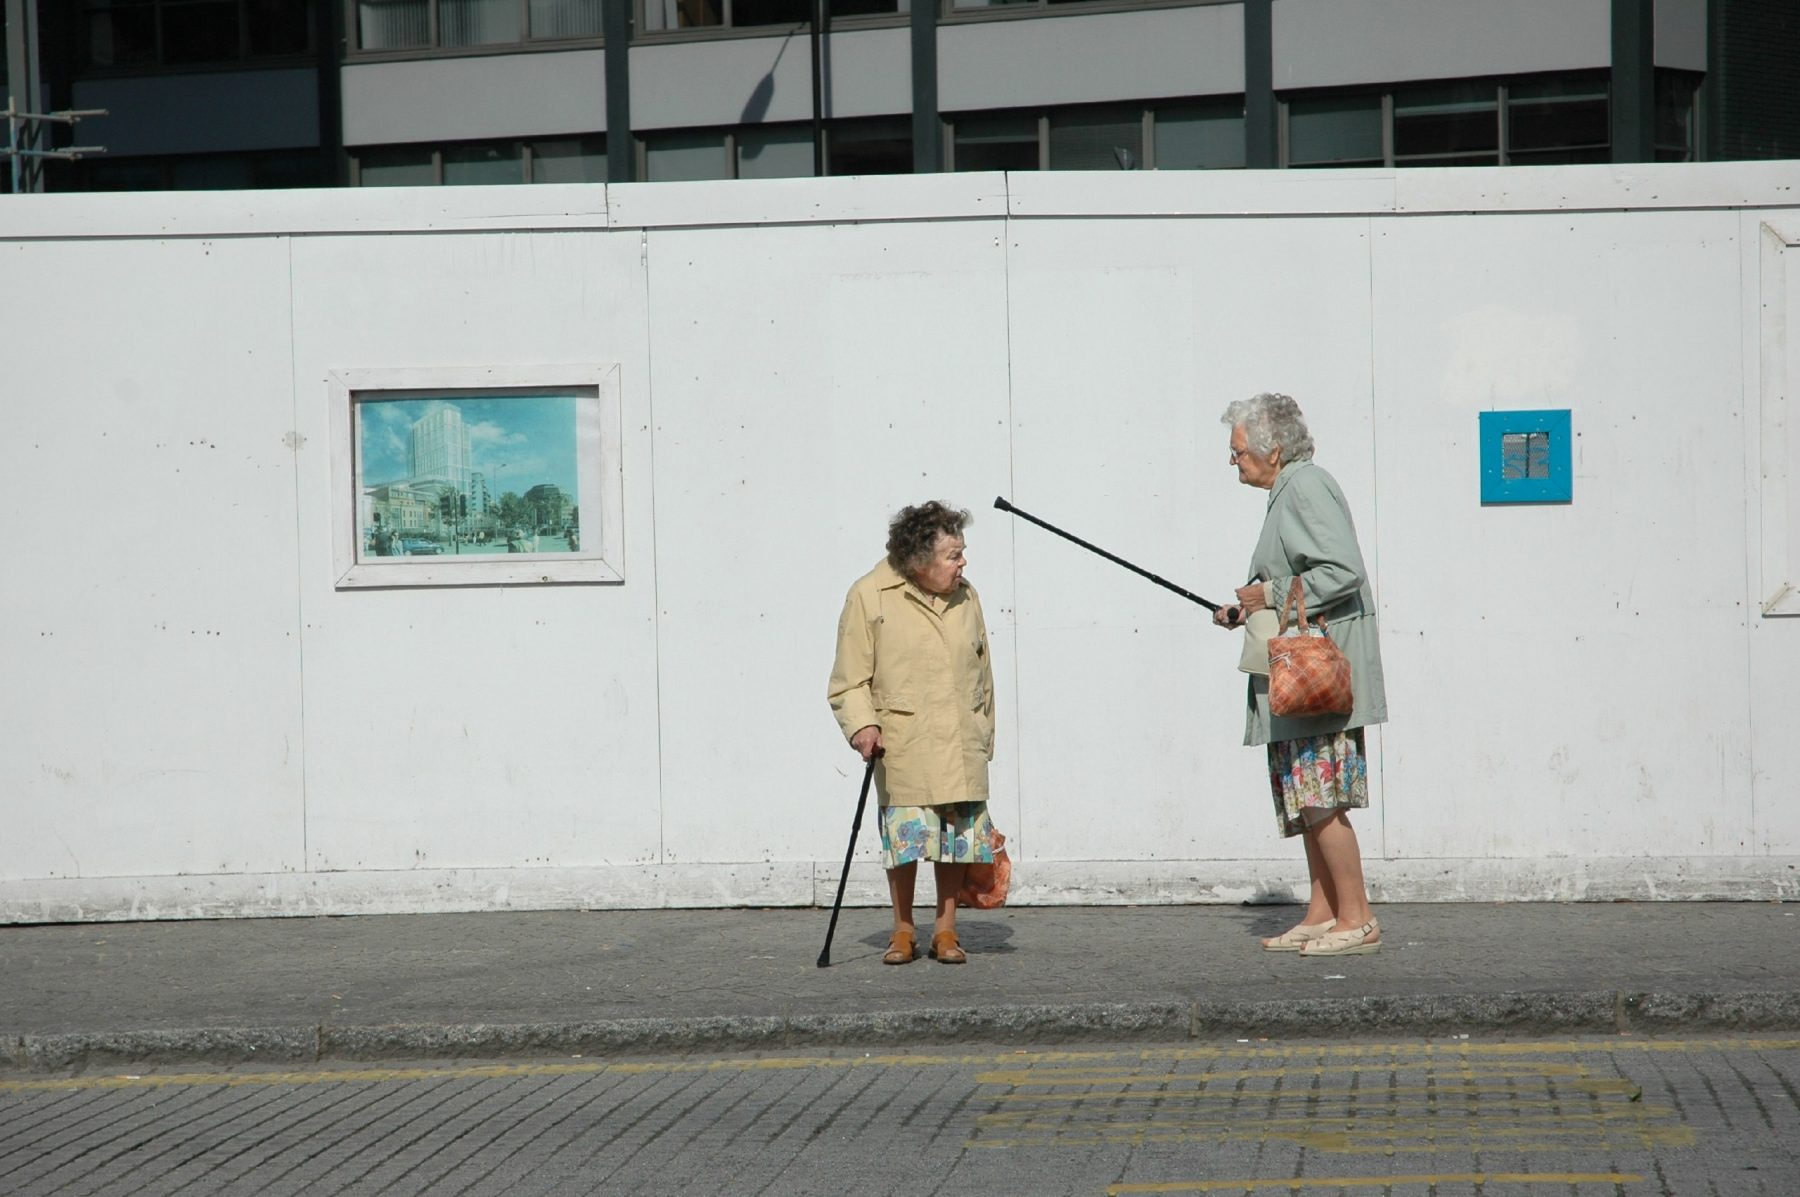 Color street photograph of elderly women arguing by Paul Russell